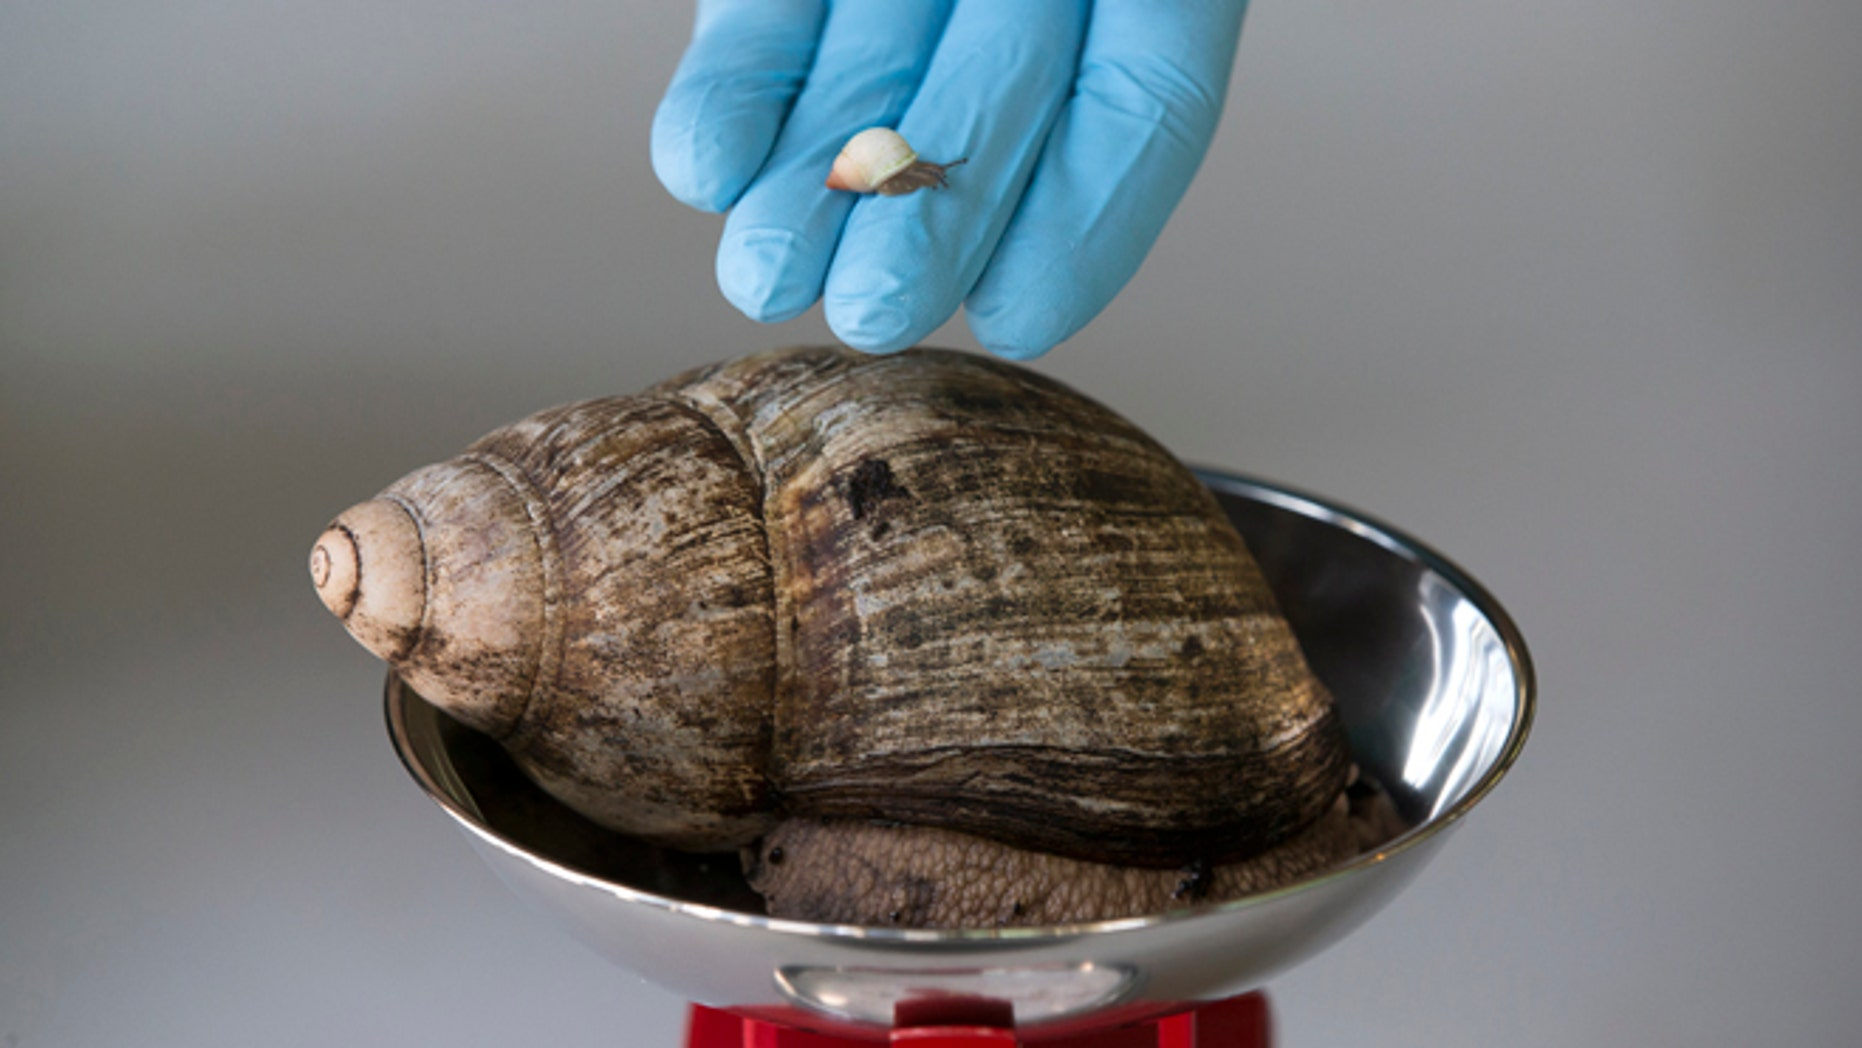 A Partula snail weighting 1mg is held next to an African Land Snail weighing 480kg.